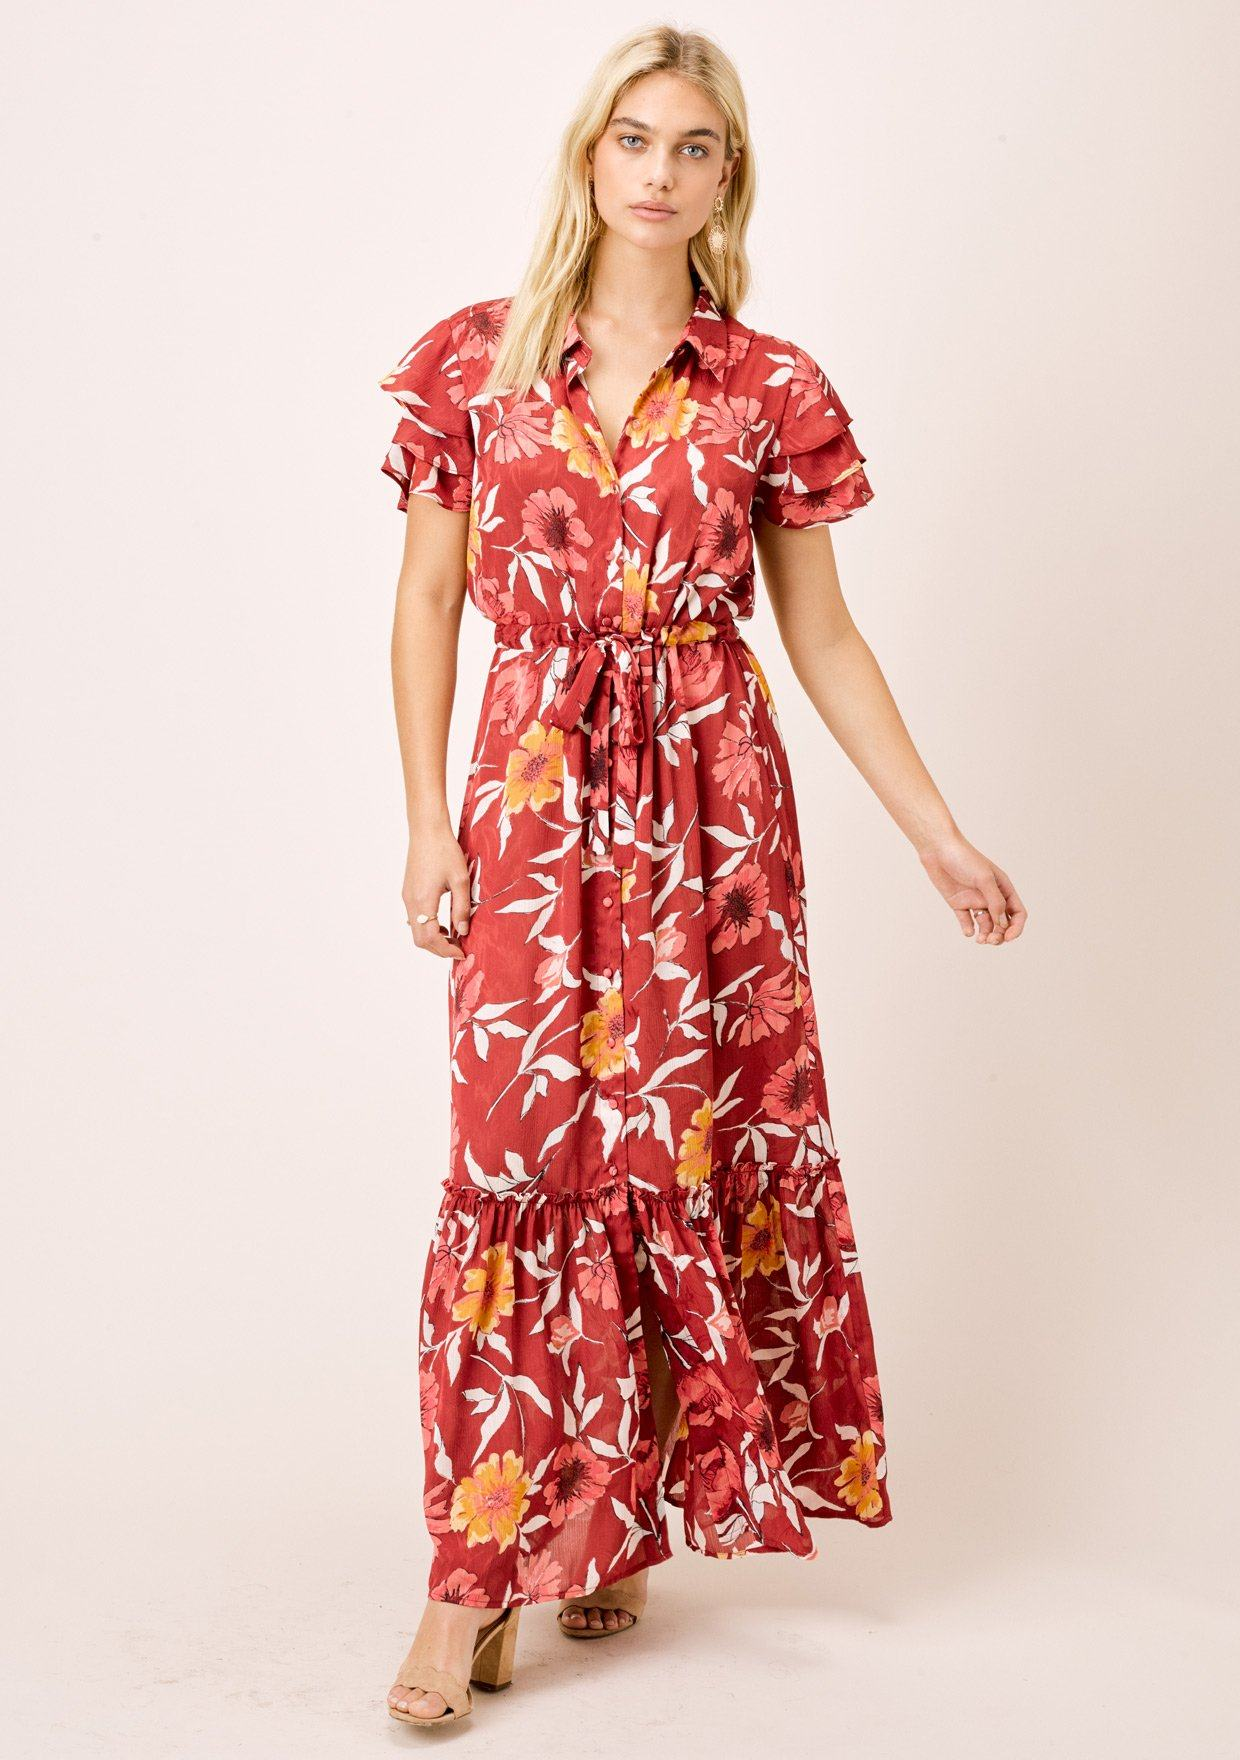 [Color: Wine/Gold] Lovestitch wine/gold sexy, vintage inspired, large floral print, short sleeve tiered maxi dress